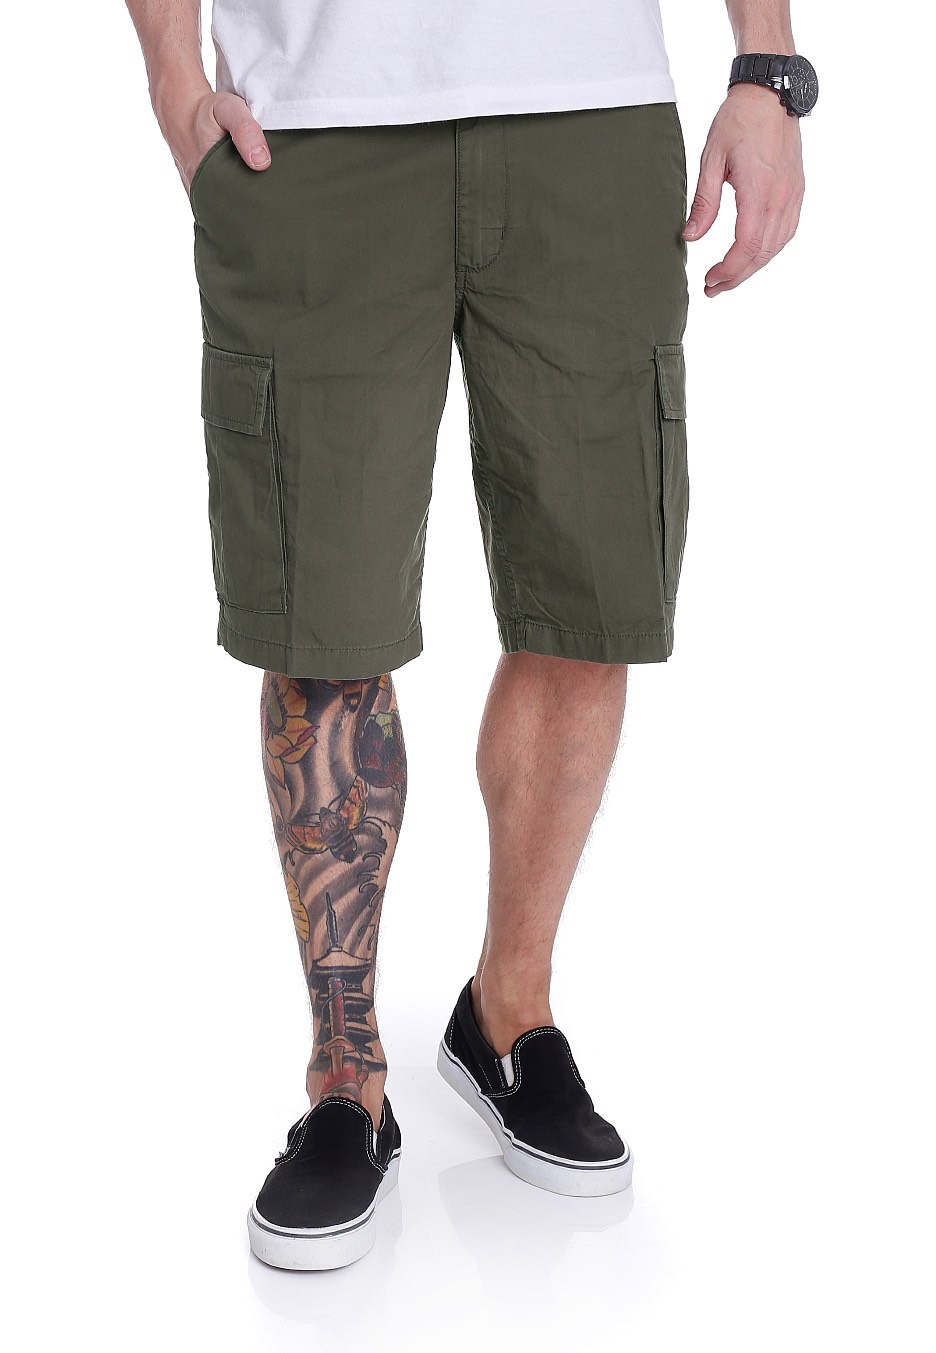 77540540a6 Vans - Tremain Grape Leaf - Shorts - Impericon.com Worldwide